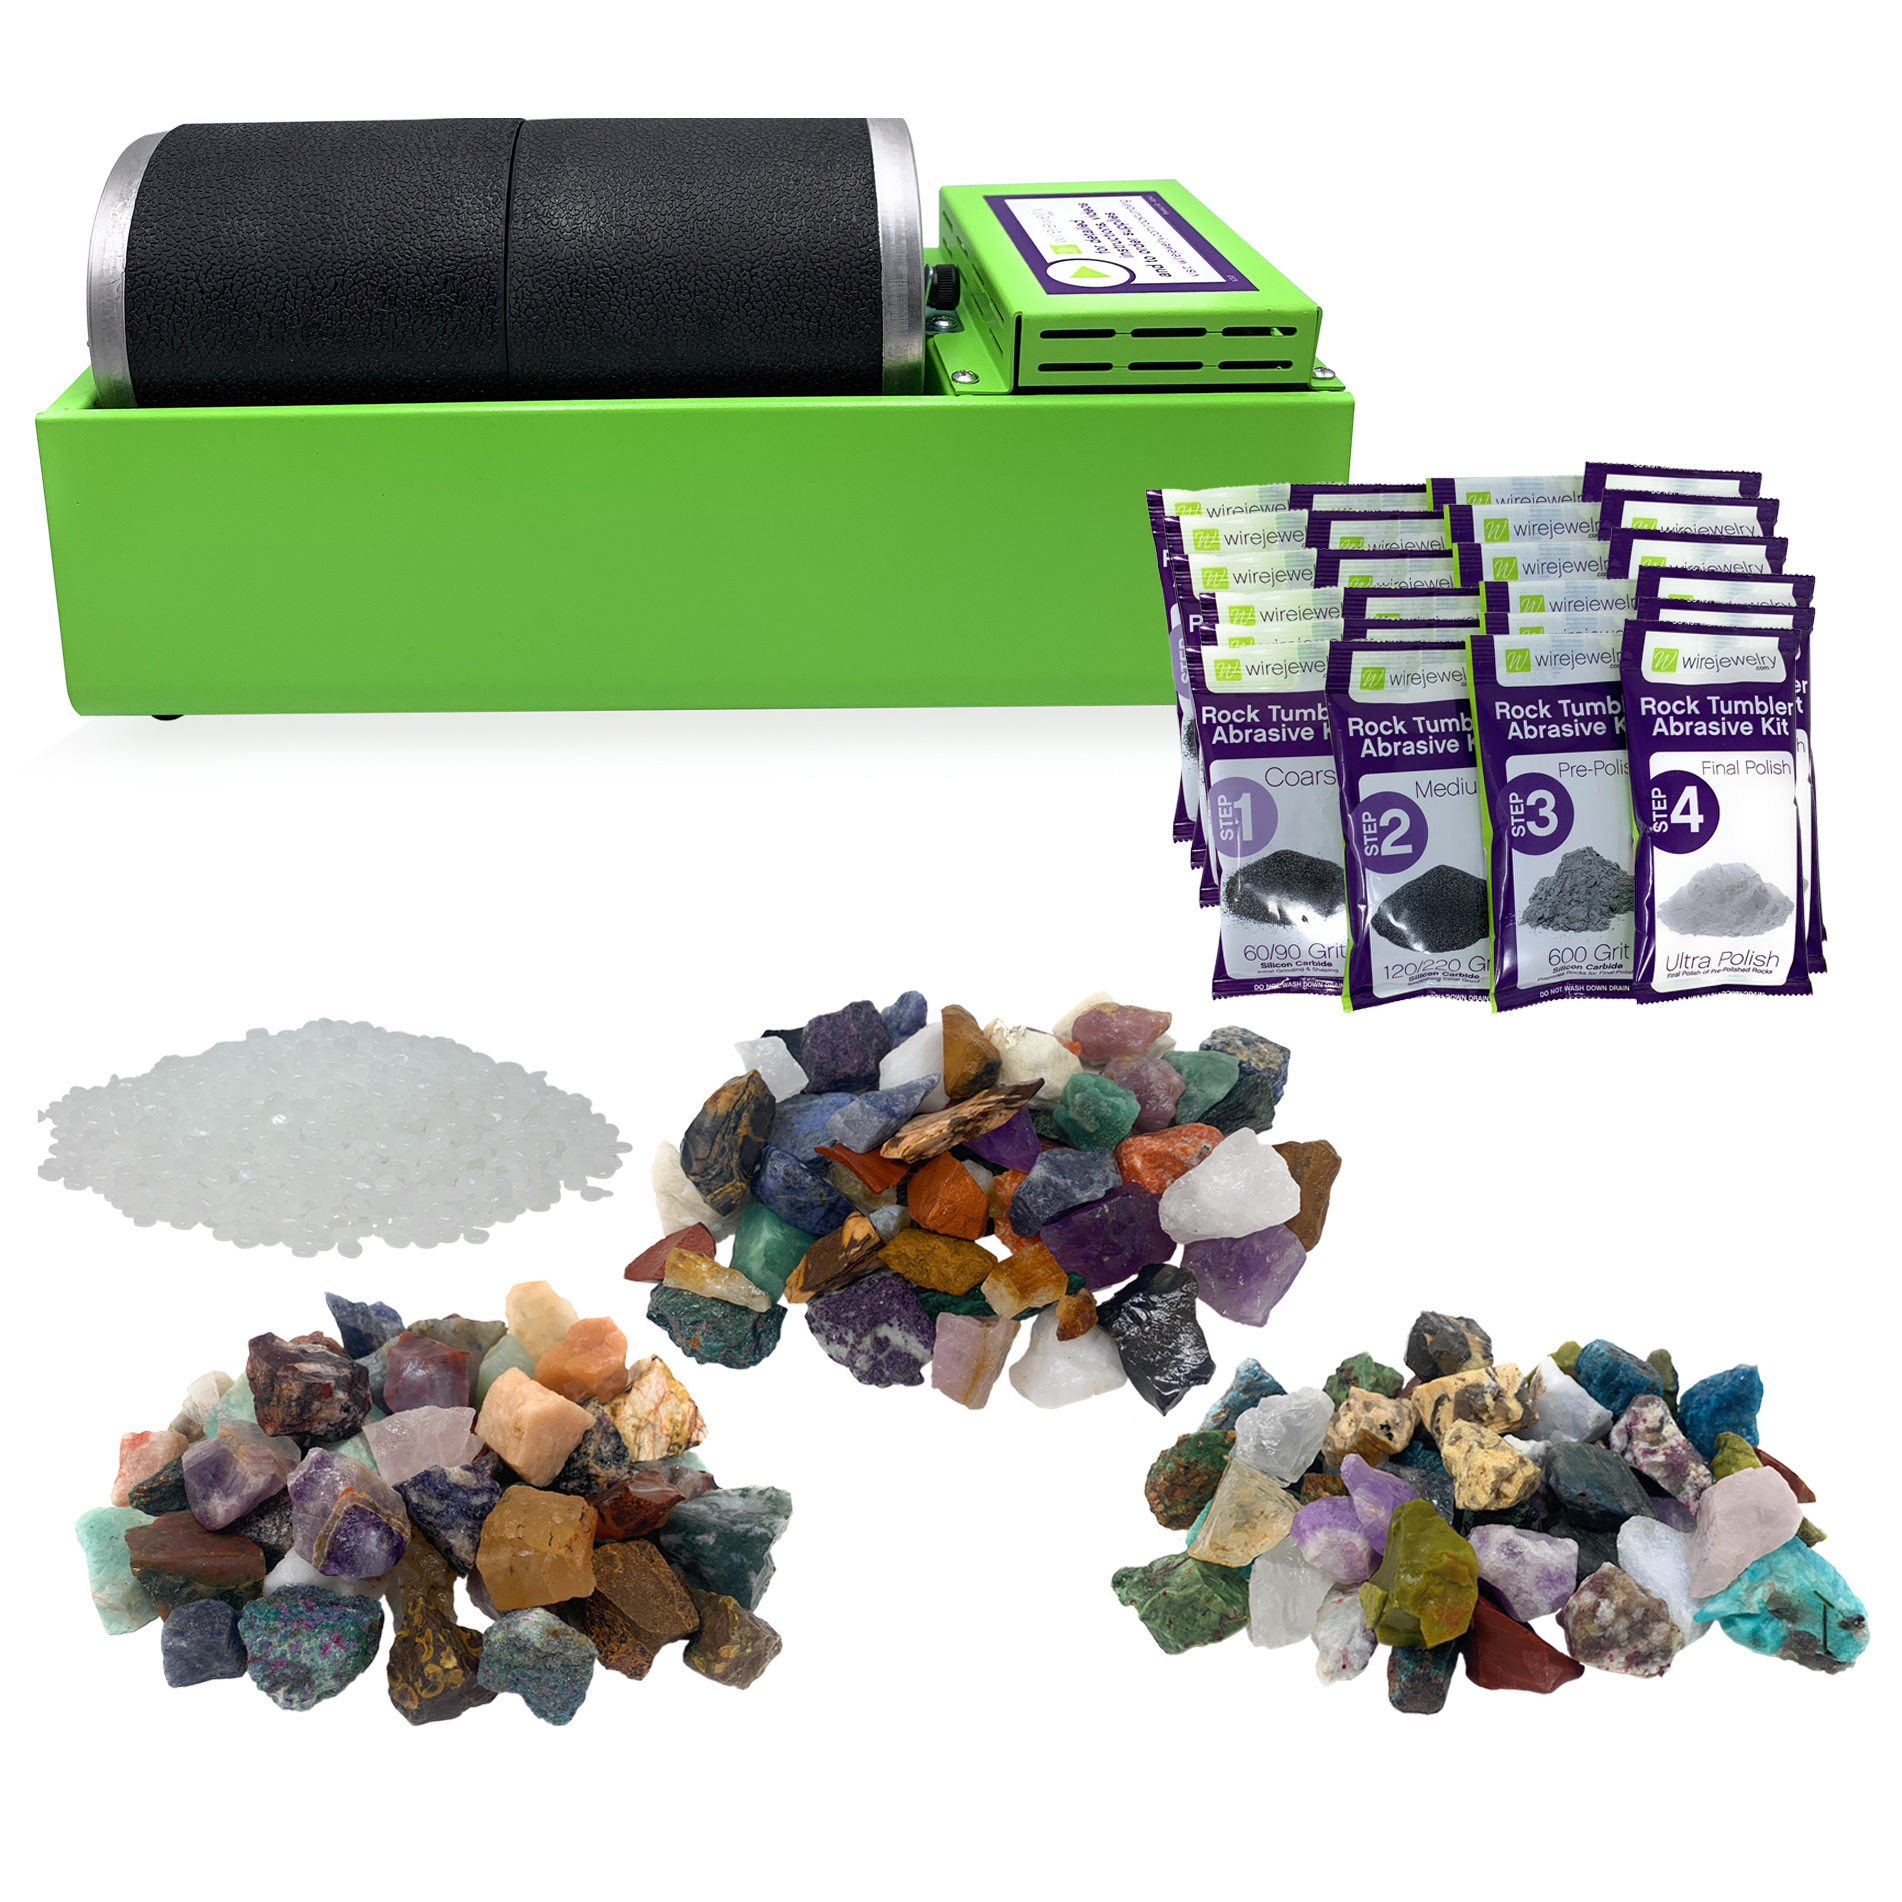 WireJewelry Double Barrel Rotary Rock Tumbler World Mix Deluxe Kit, Includes 3 Lbs of Stone from each Location (Asia, Brazil and Madagascar) and 6 Batches of 4 Step Grit & Polish with Plastic Pellets